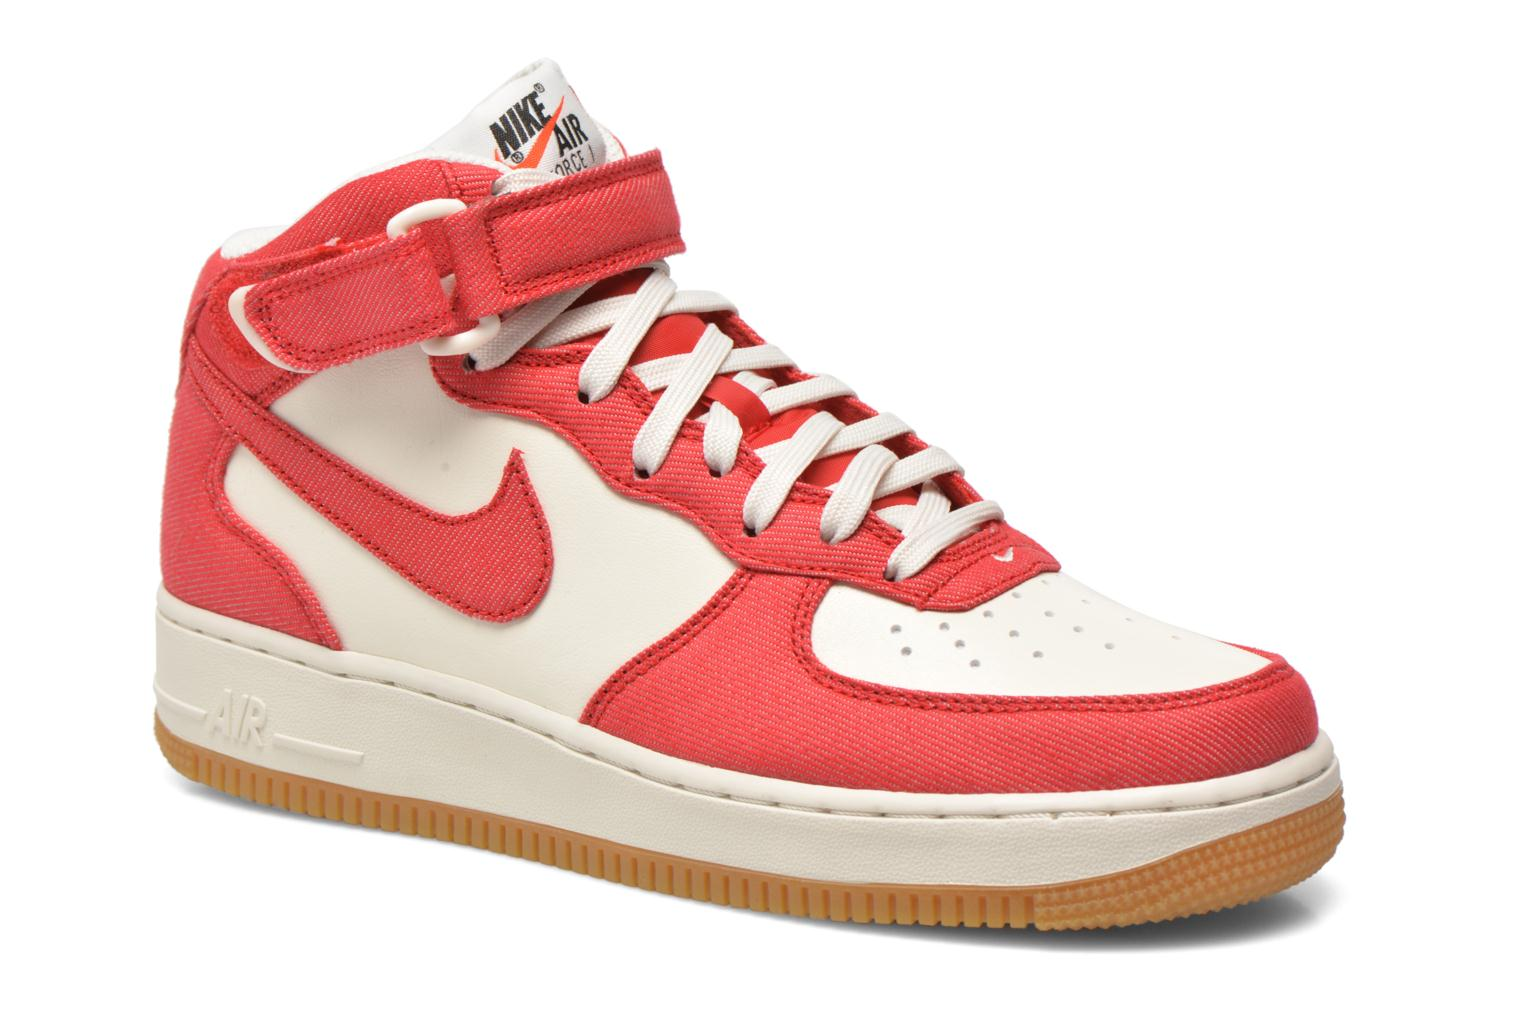 Air Force 1 Mid Unvrsty Rd/Unvrsty Rd-Sl-Gm Lg